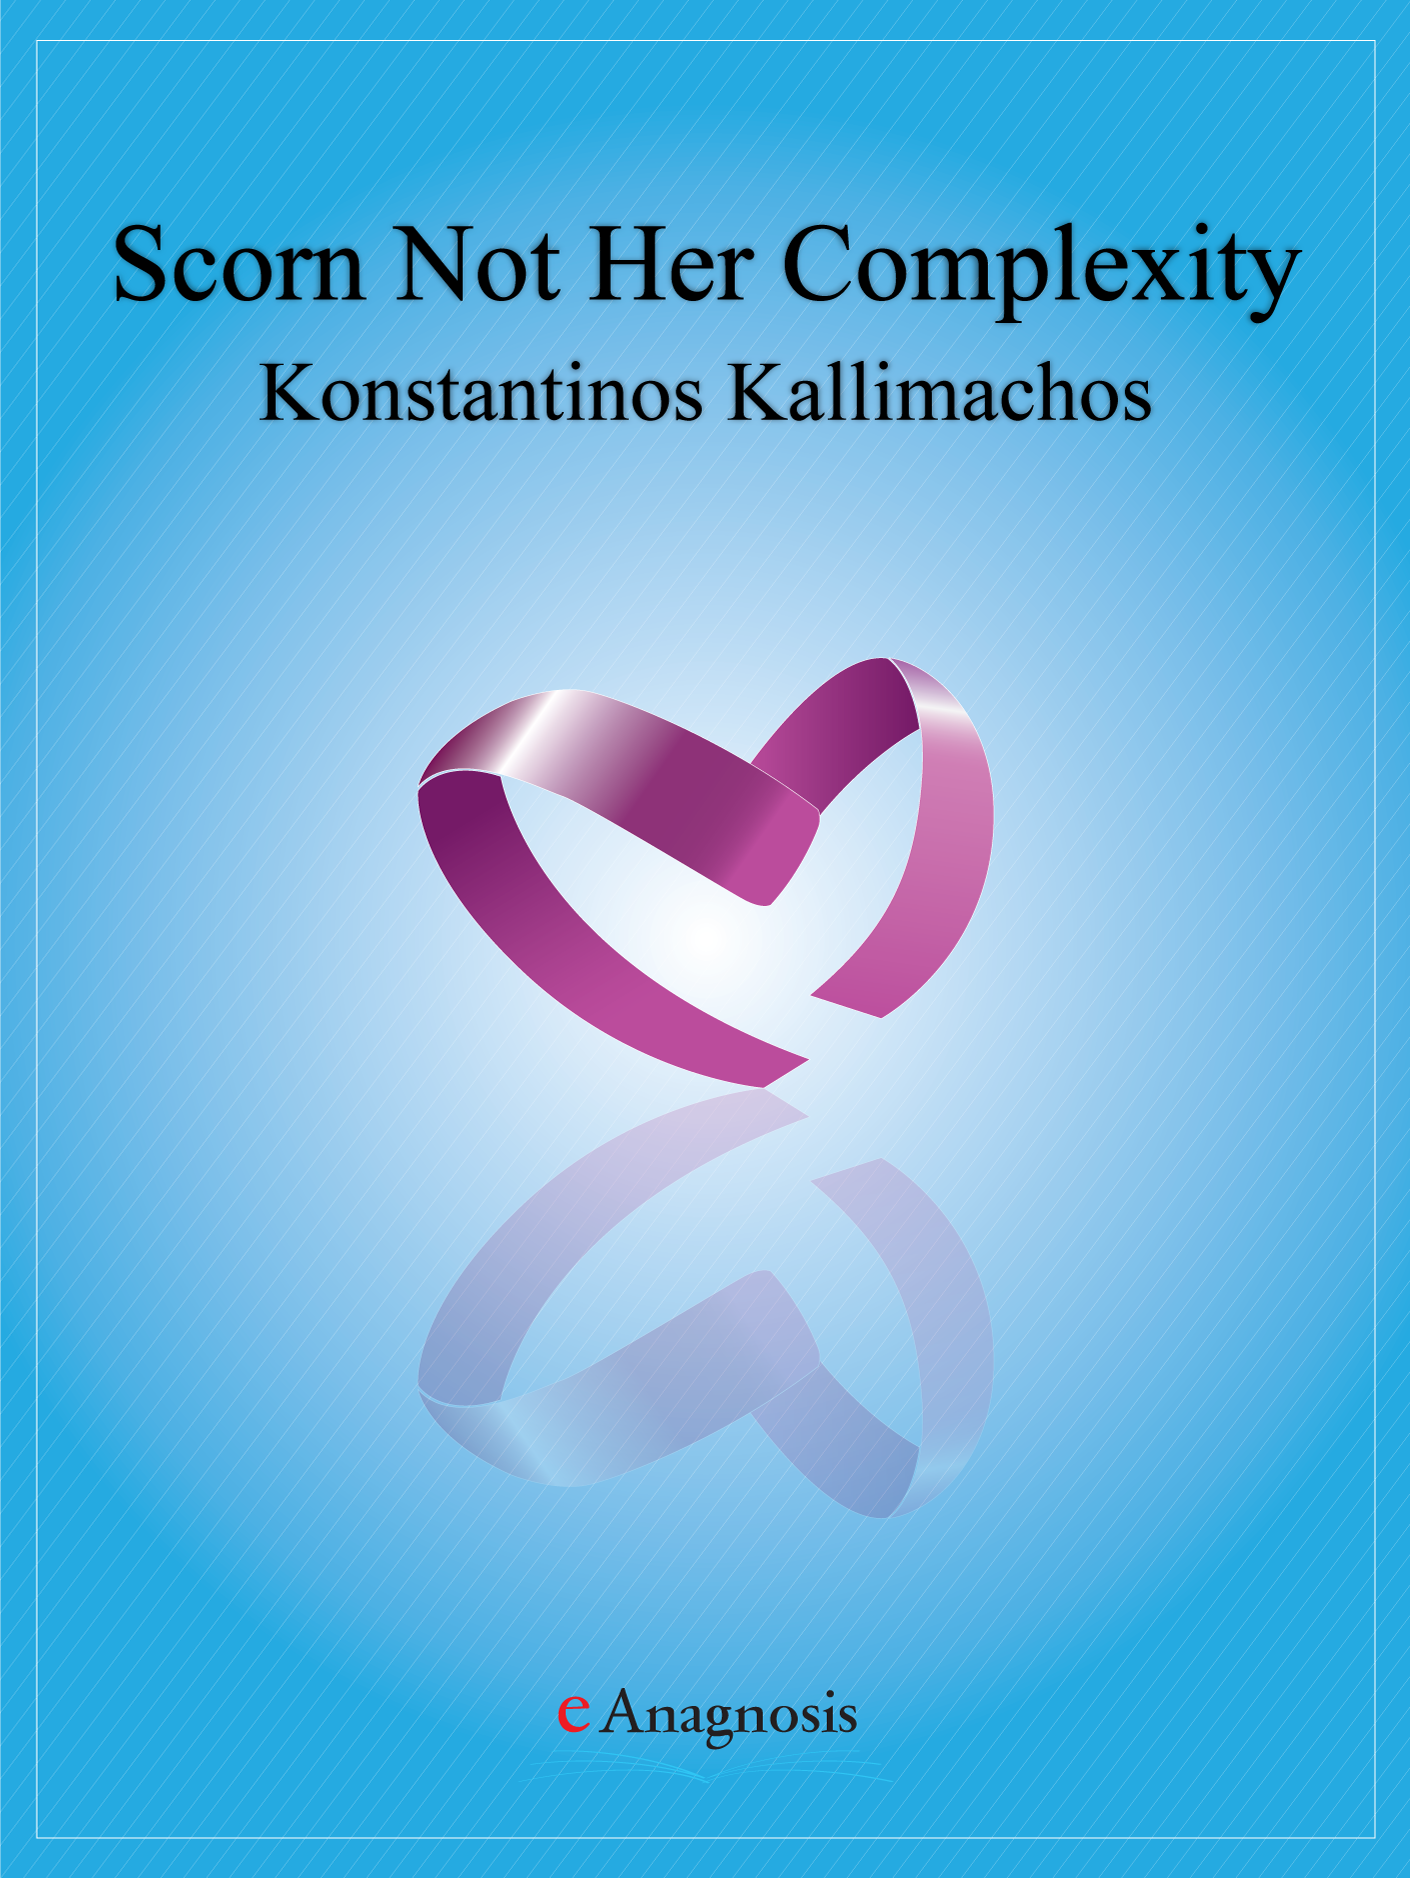 Scorn Not Her complexity - Epilepsy My Love by Konstantinos Kallimachos, Laura Bodger and Mary Cor